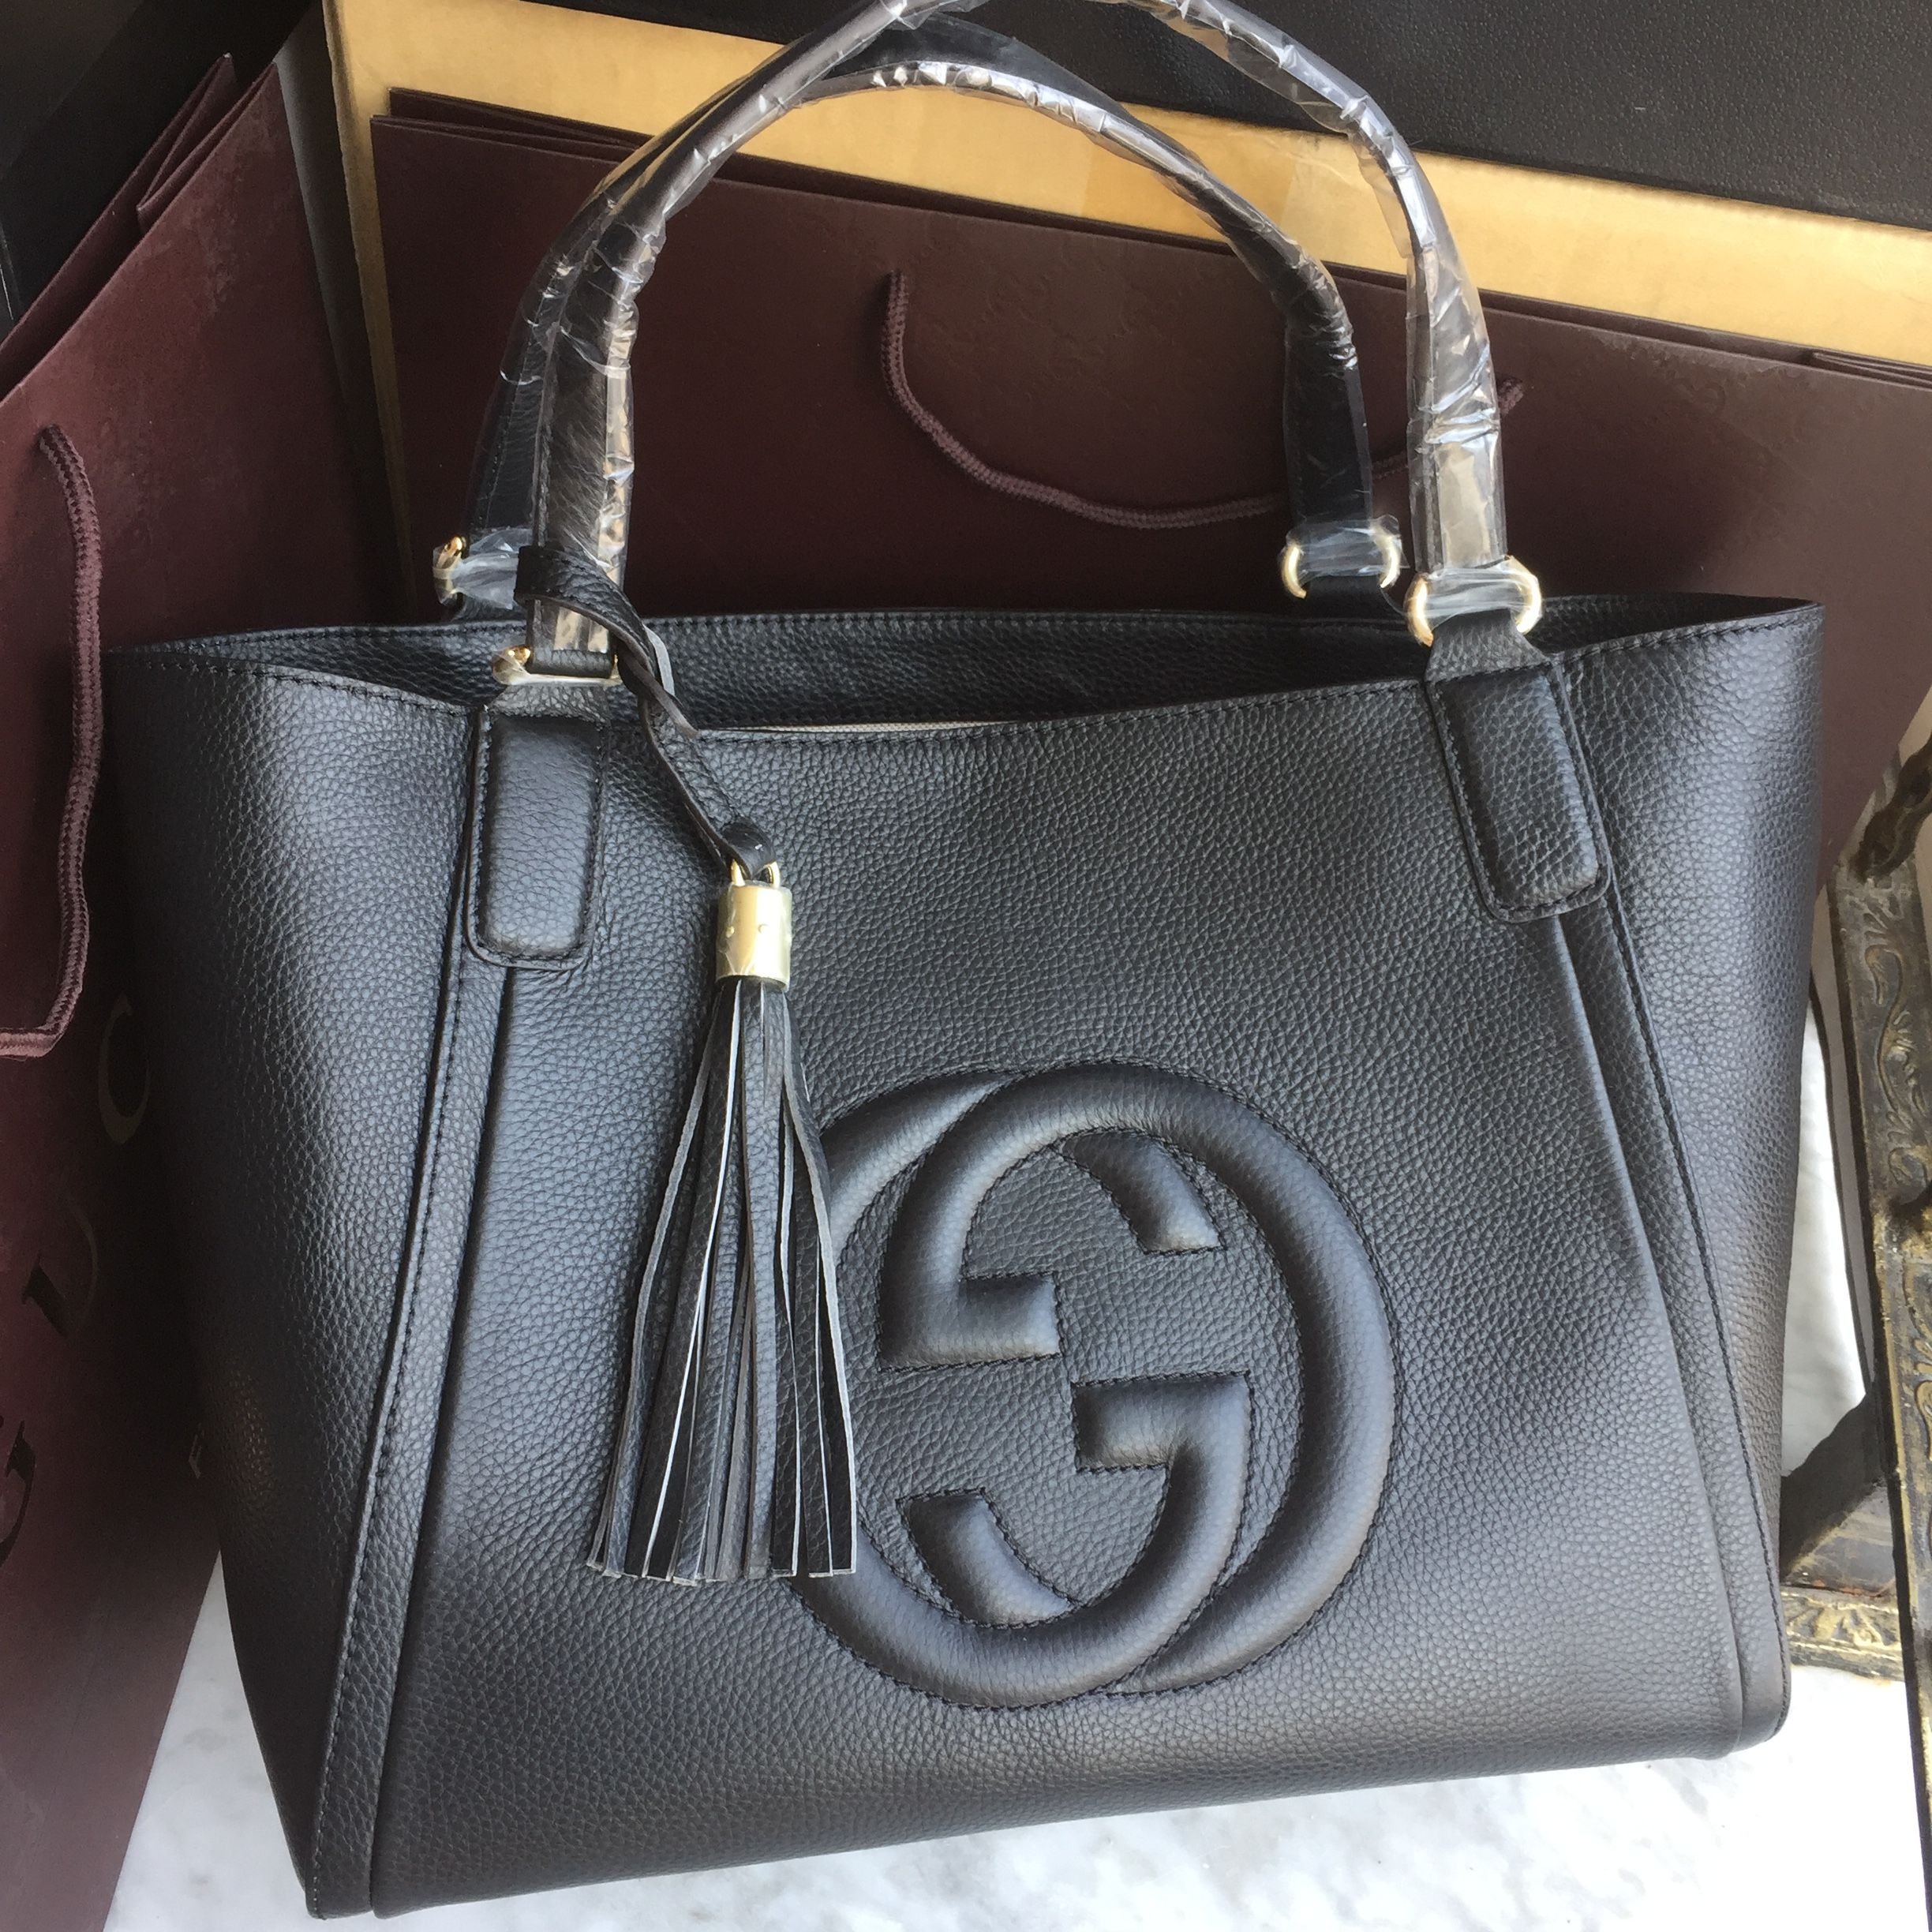 Gucci woman soho tote bag